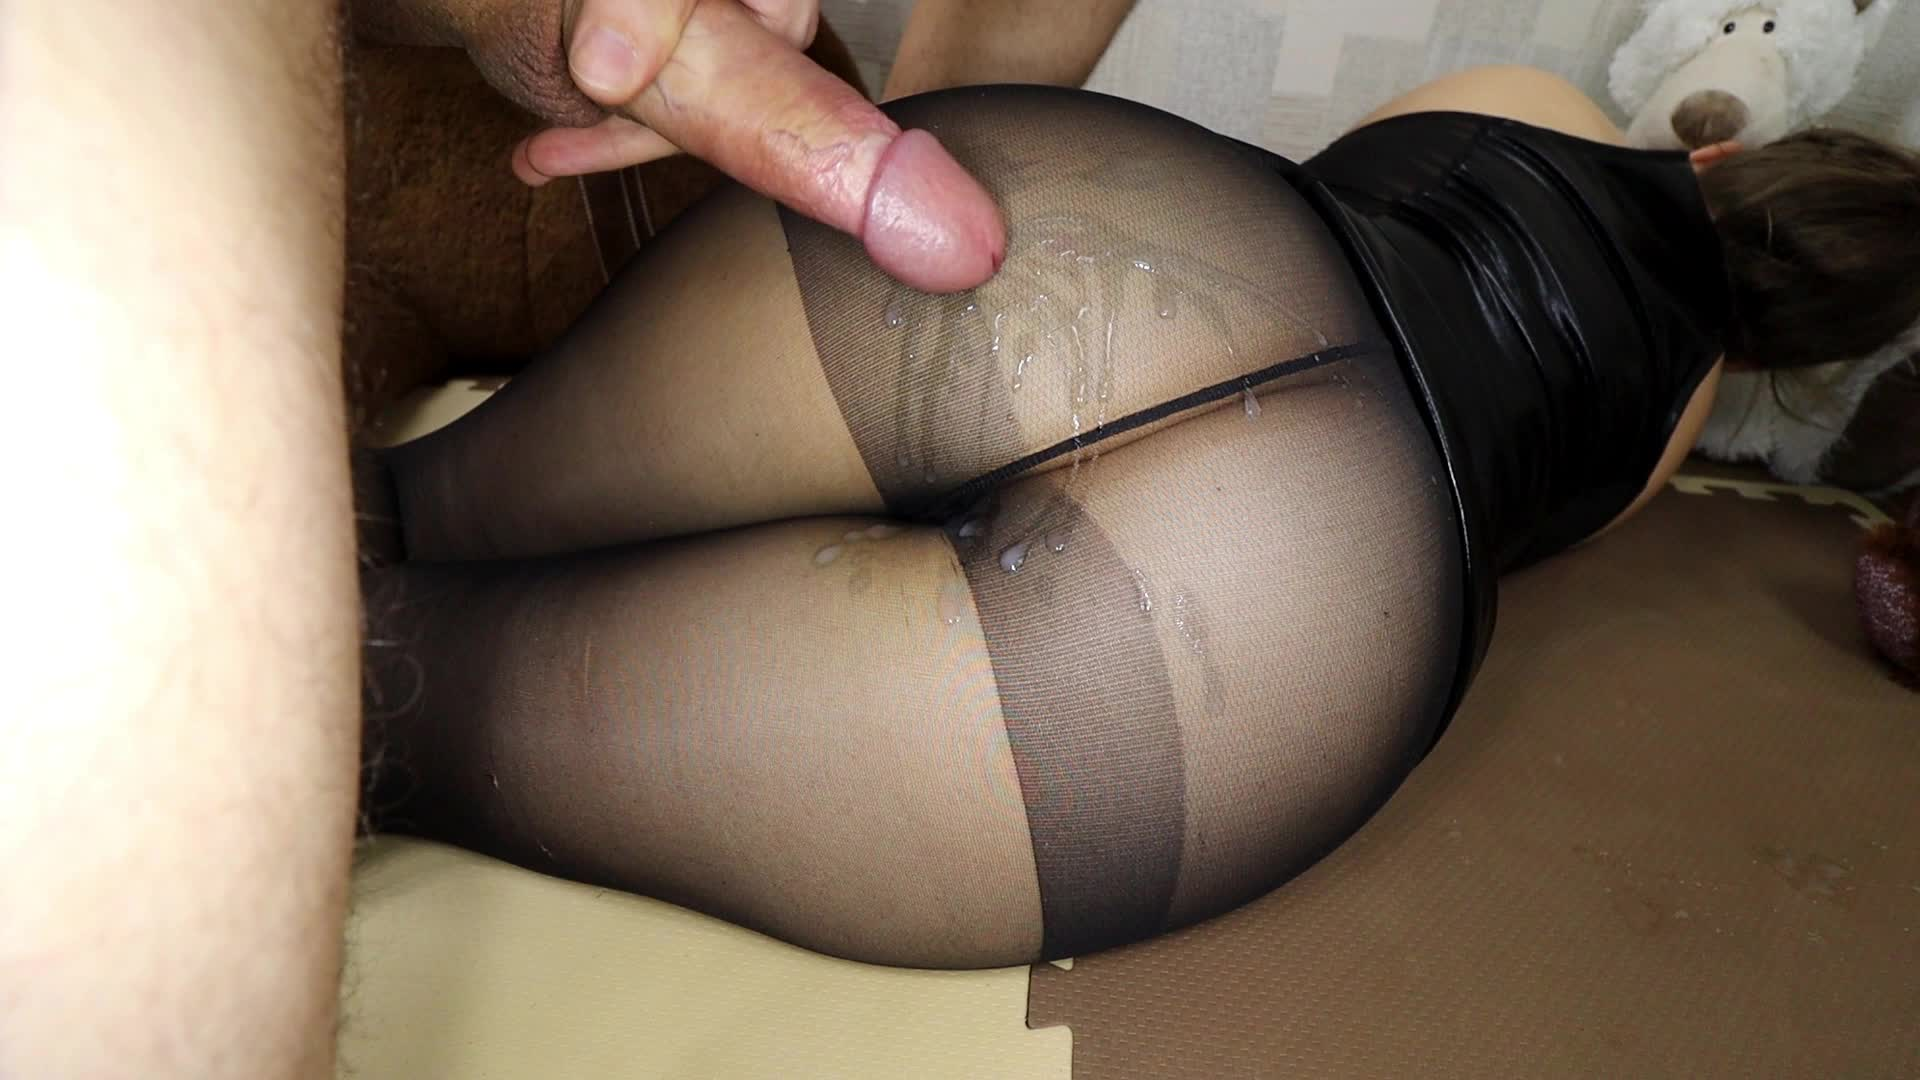 Cute jap girl on pantyhose goes live on cam